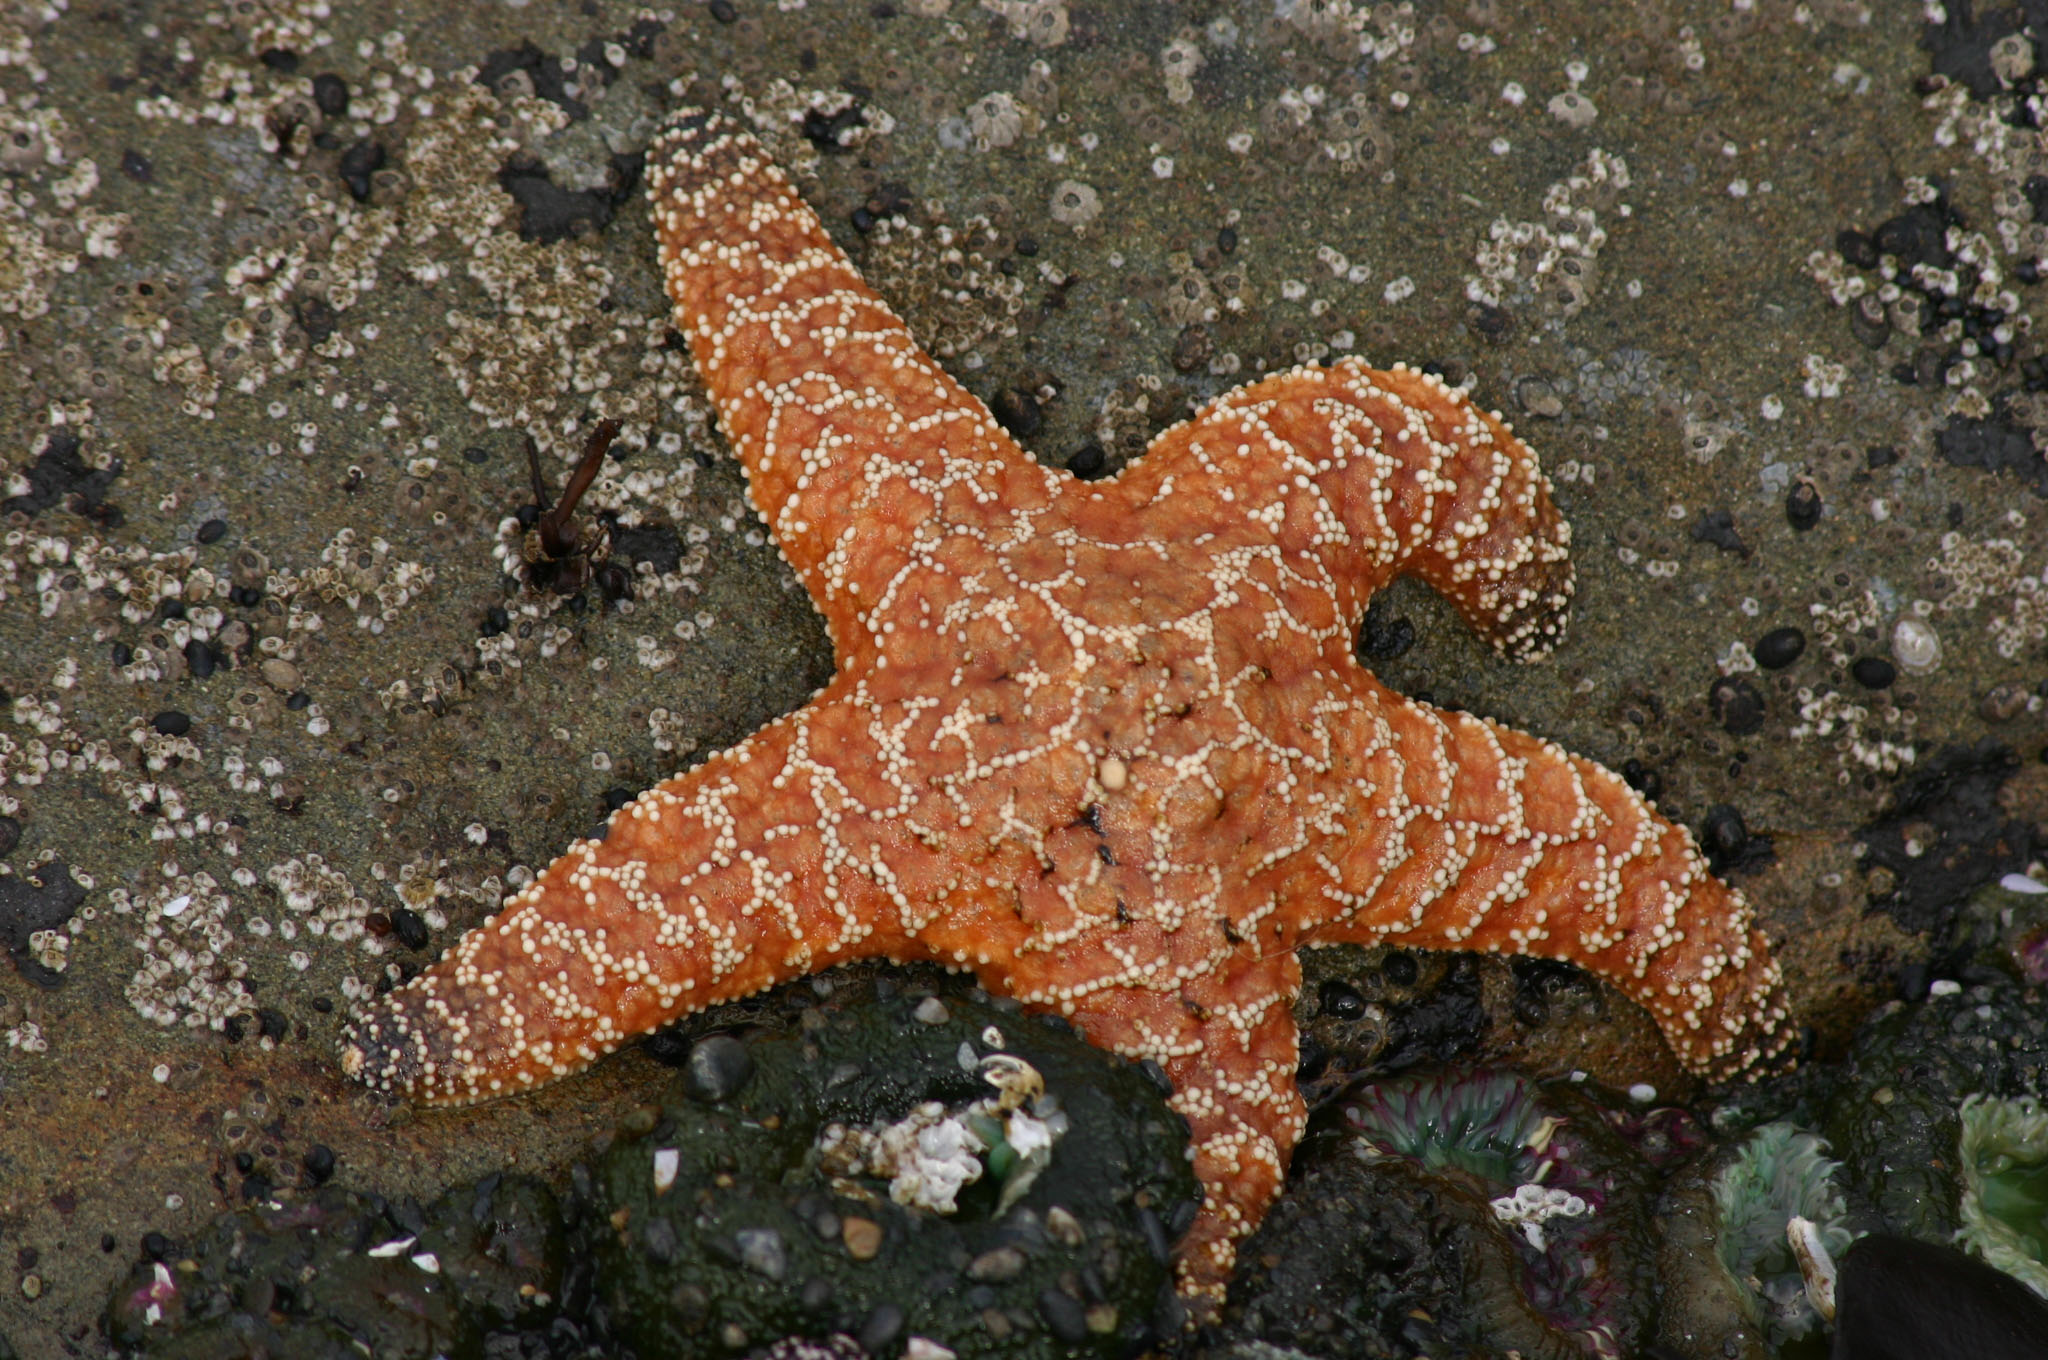 A purple sea star | WING-CHI POON